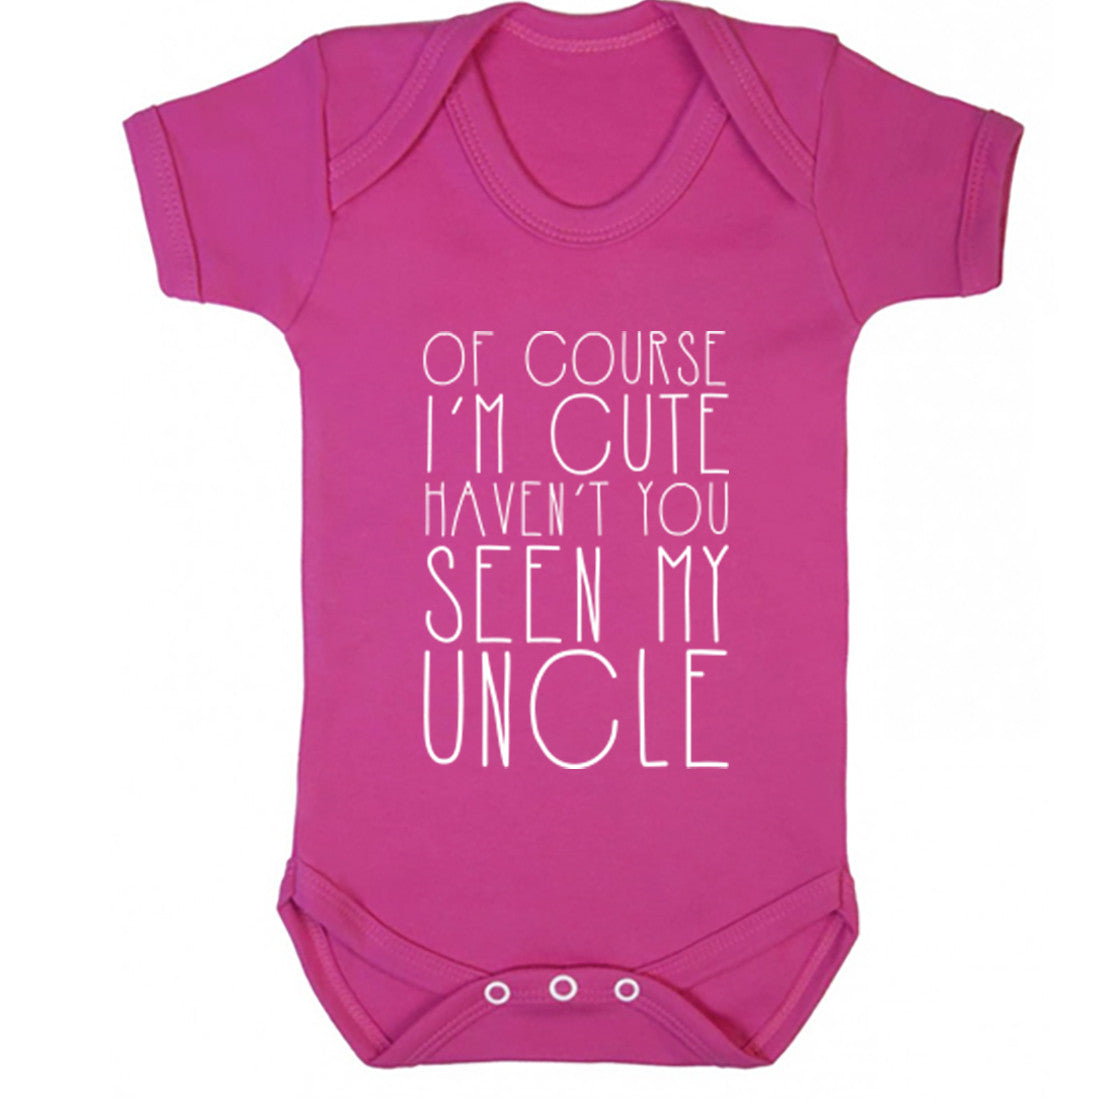 Of Course I'm Cute Haven't You Seen My Uncle Baby Vest K1380 - Illustrated Identity Ltd.